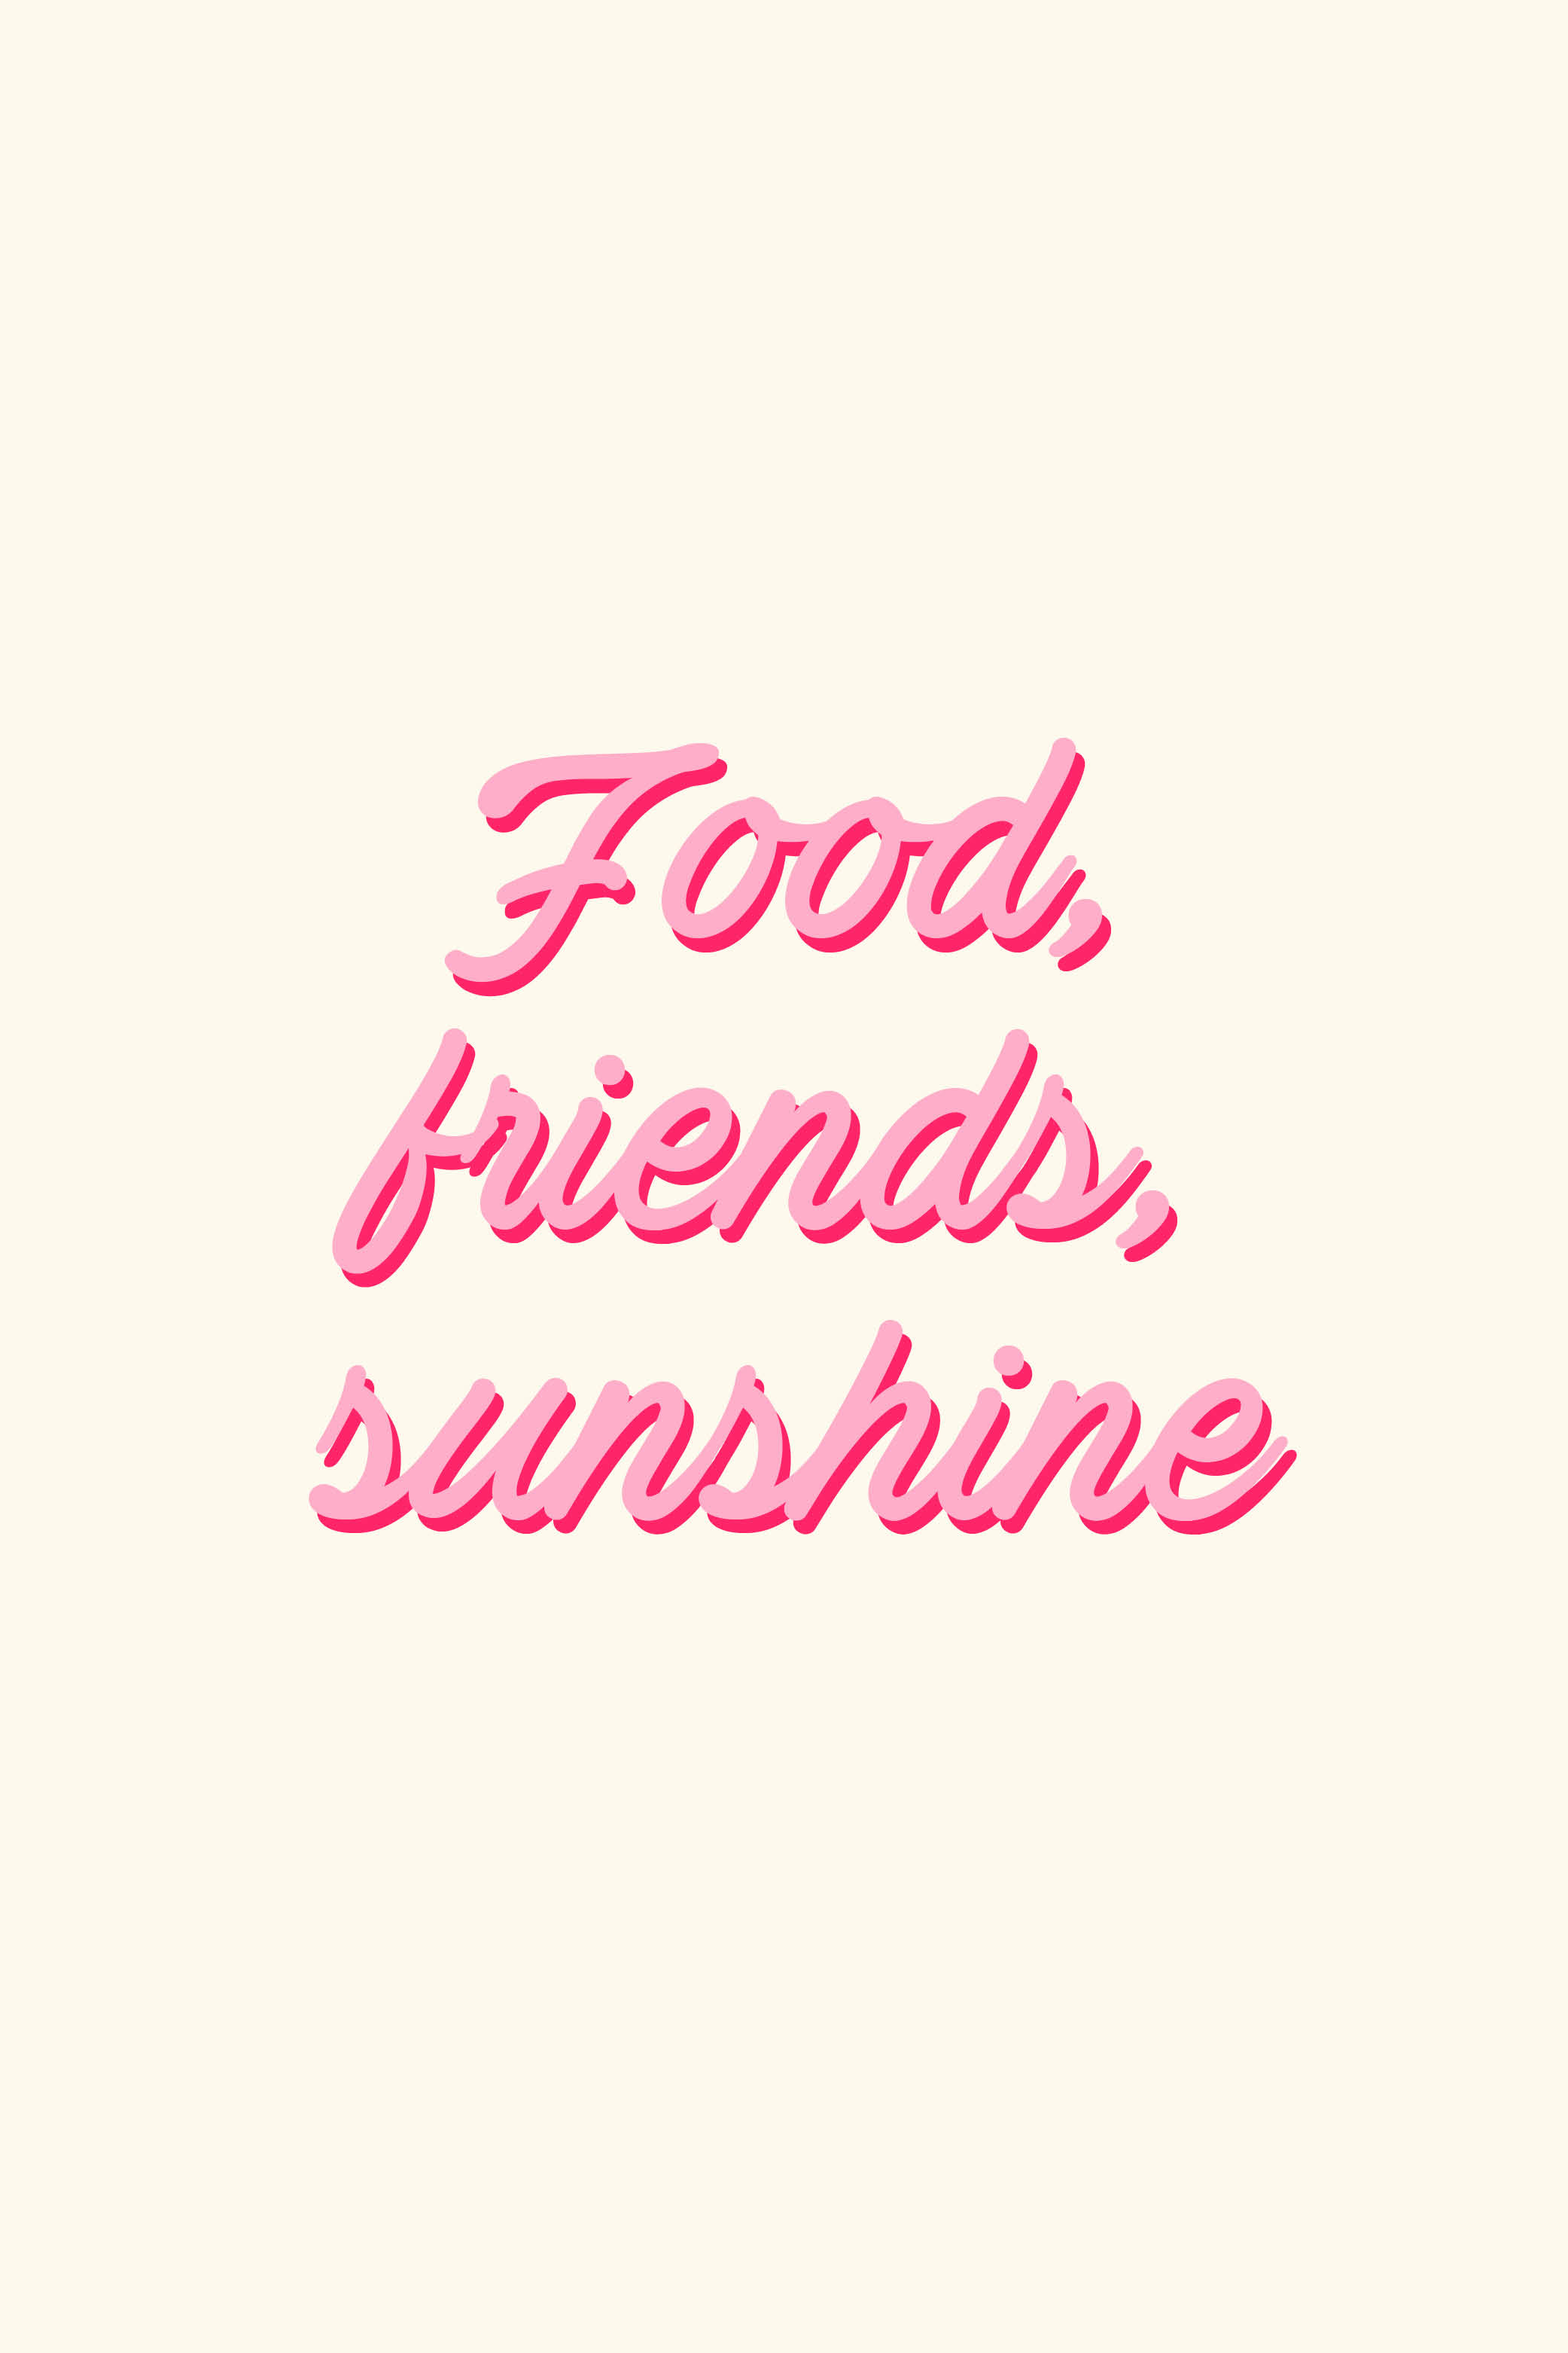 Love Quotes For Friends Food Friends Sunshine ☀ Love The Quote And The Typography